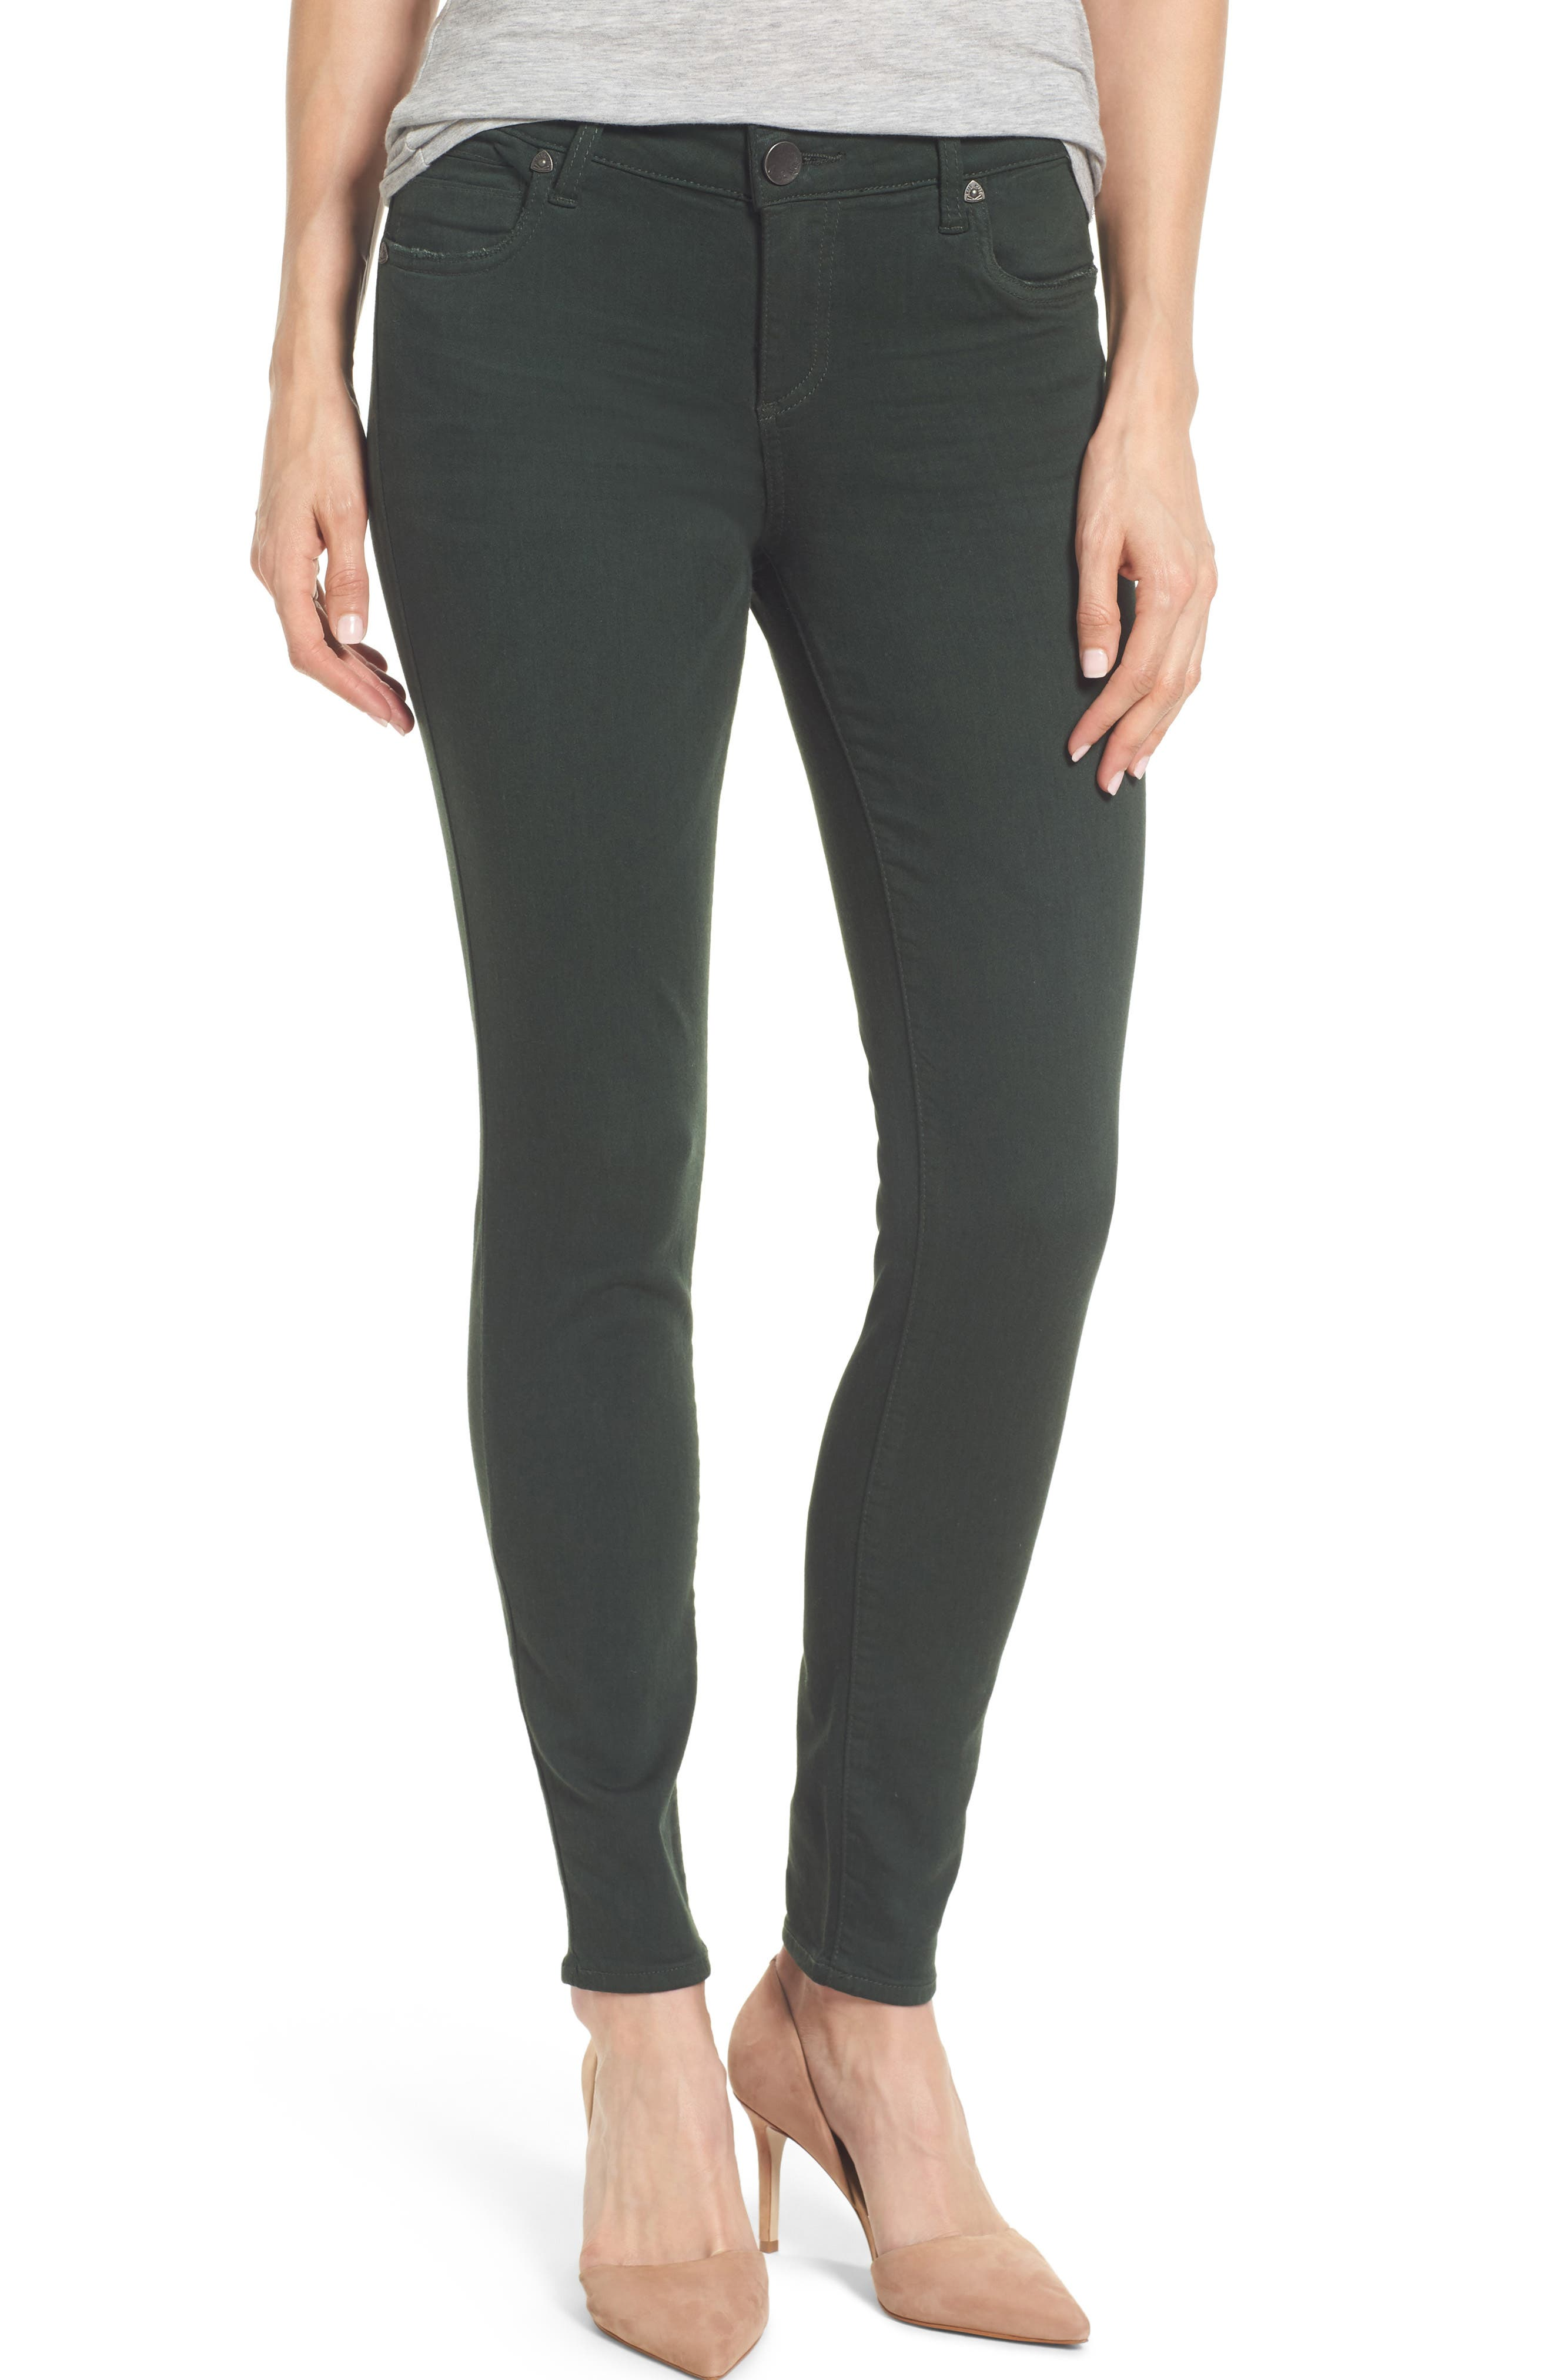 Alternate Image 1 Selected - KUT from The Kloth Mia Ankle Skinny Jeans (Deep Green)